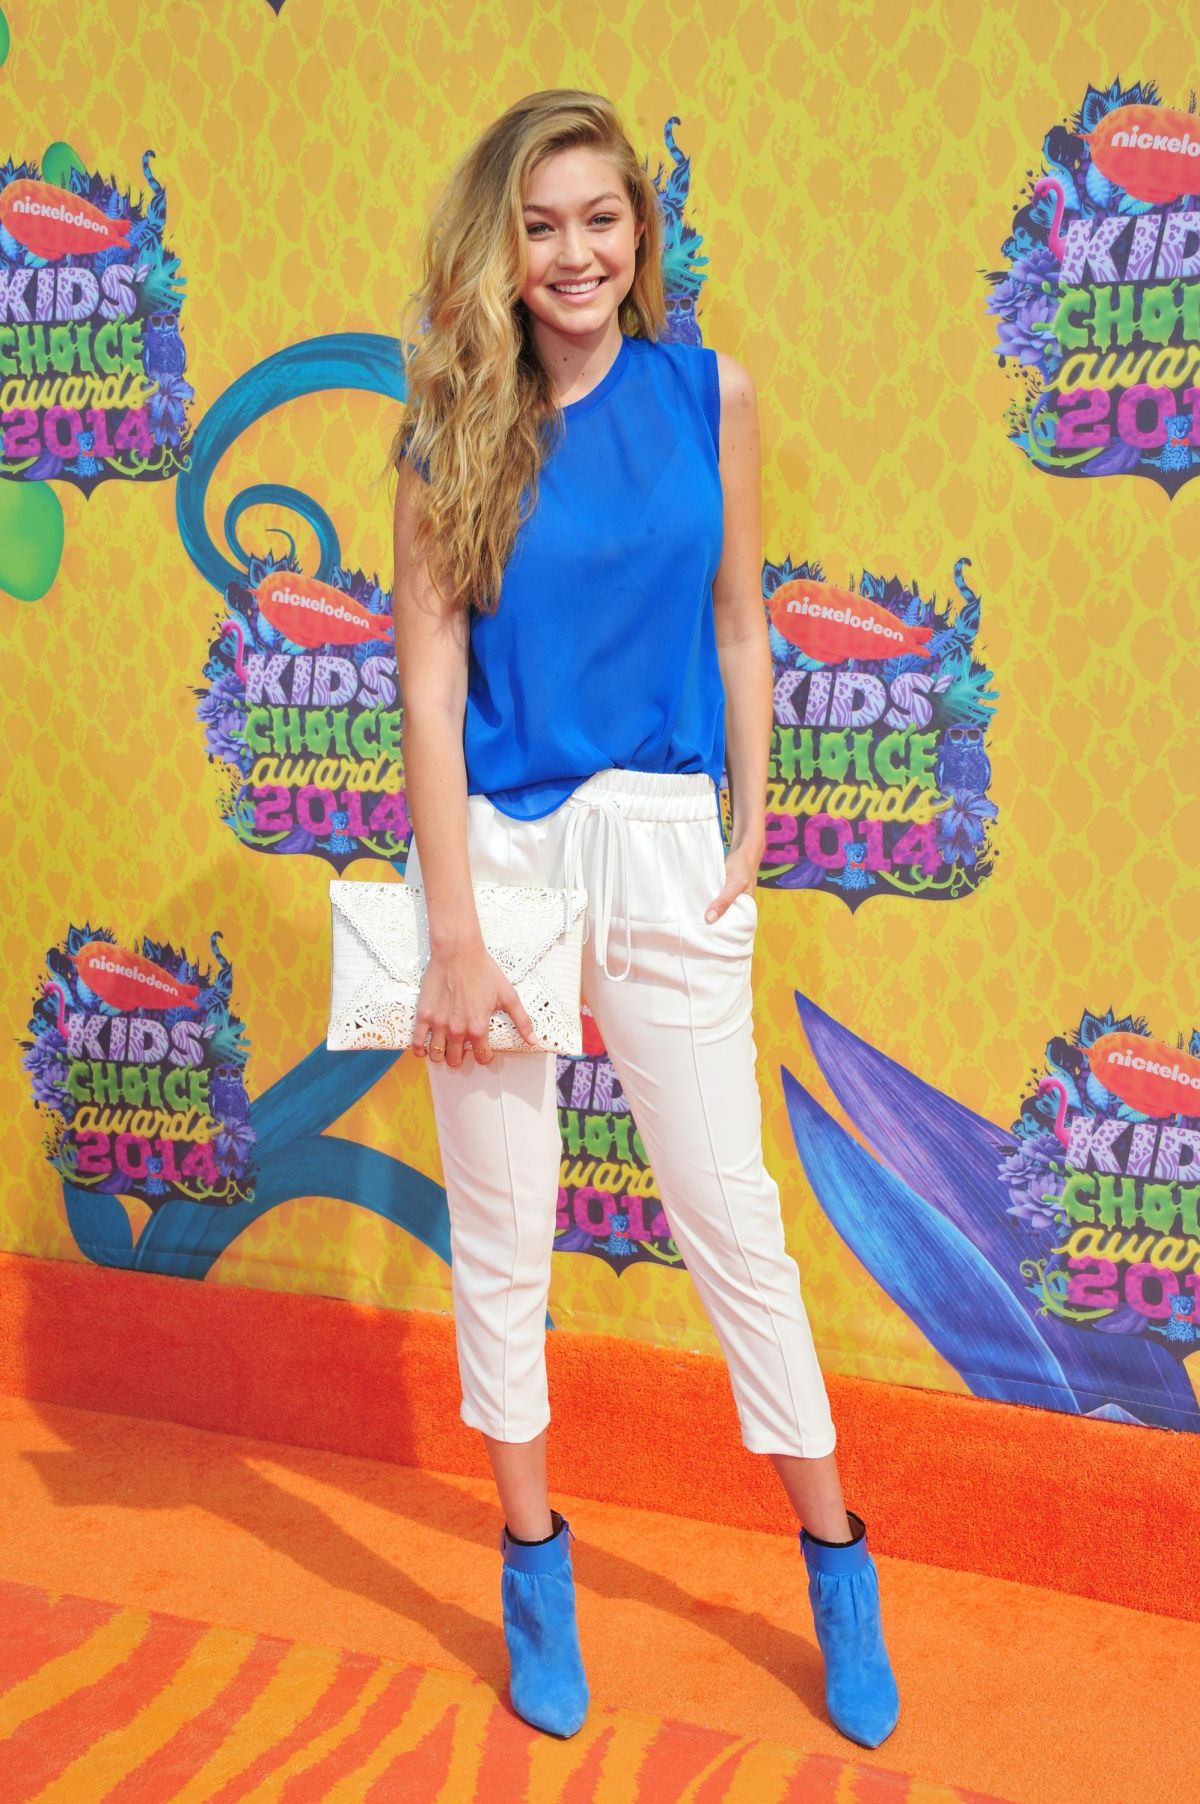 8- kids choice